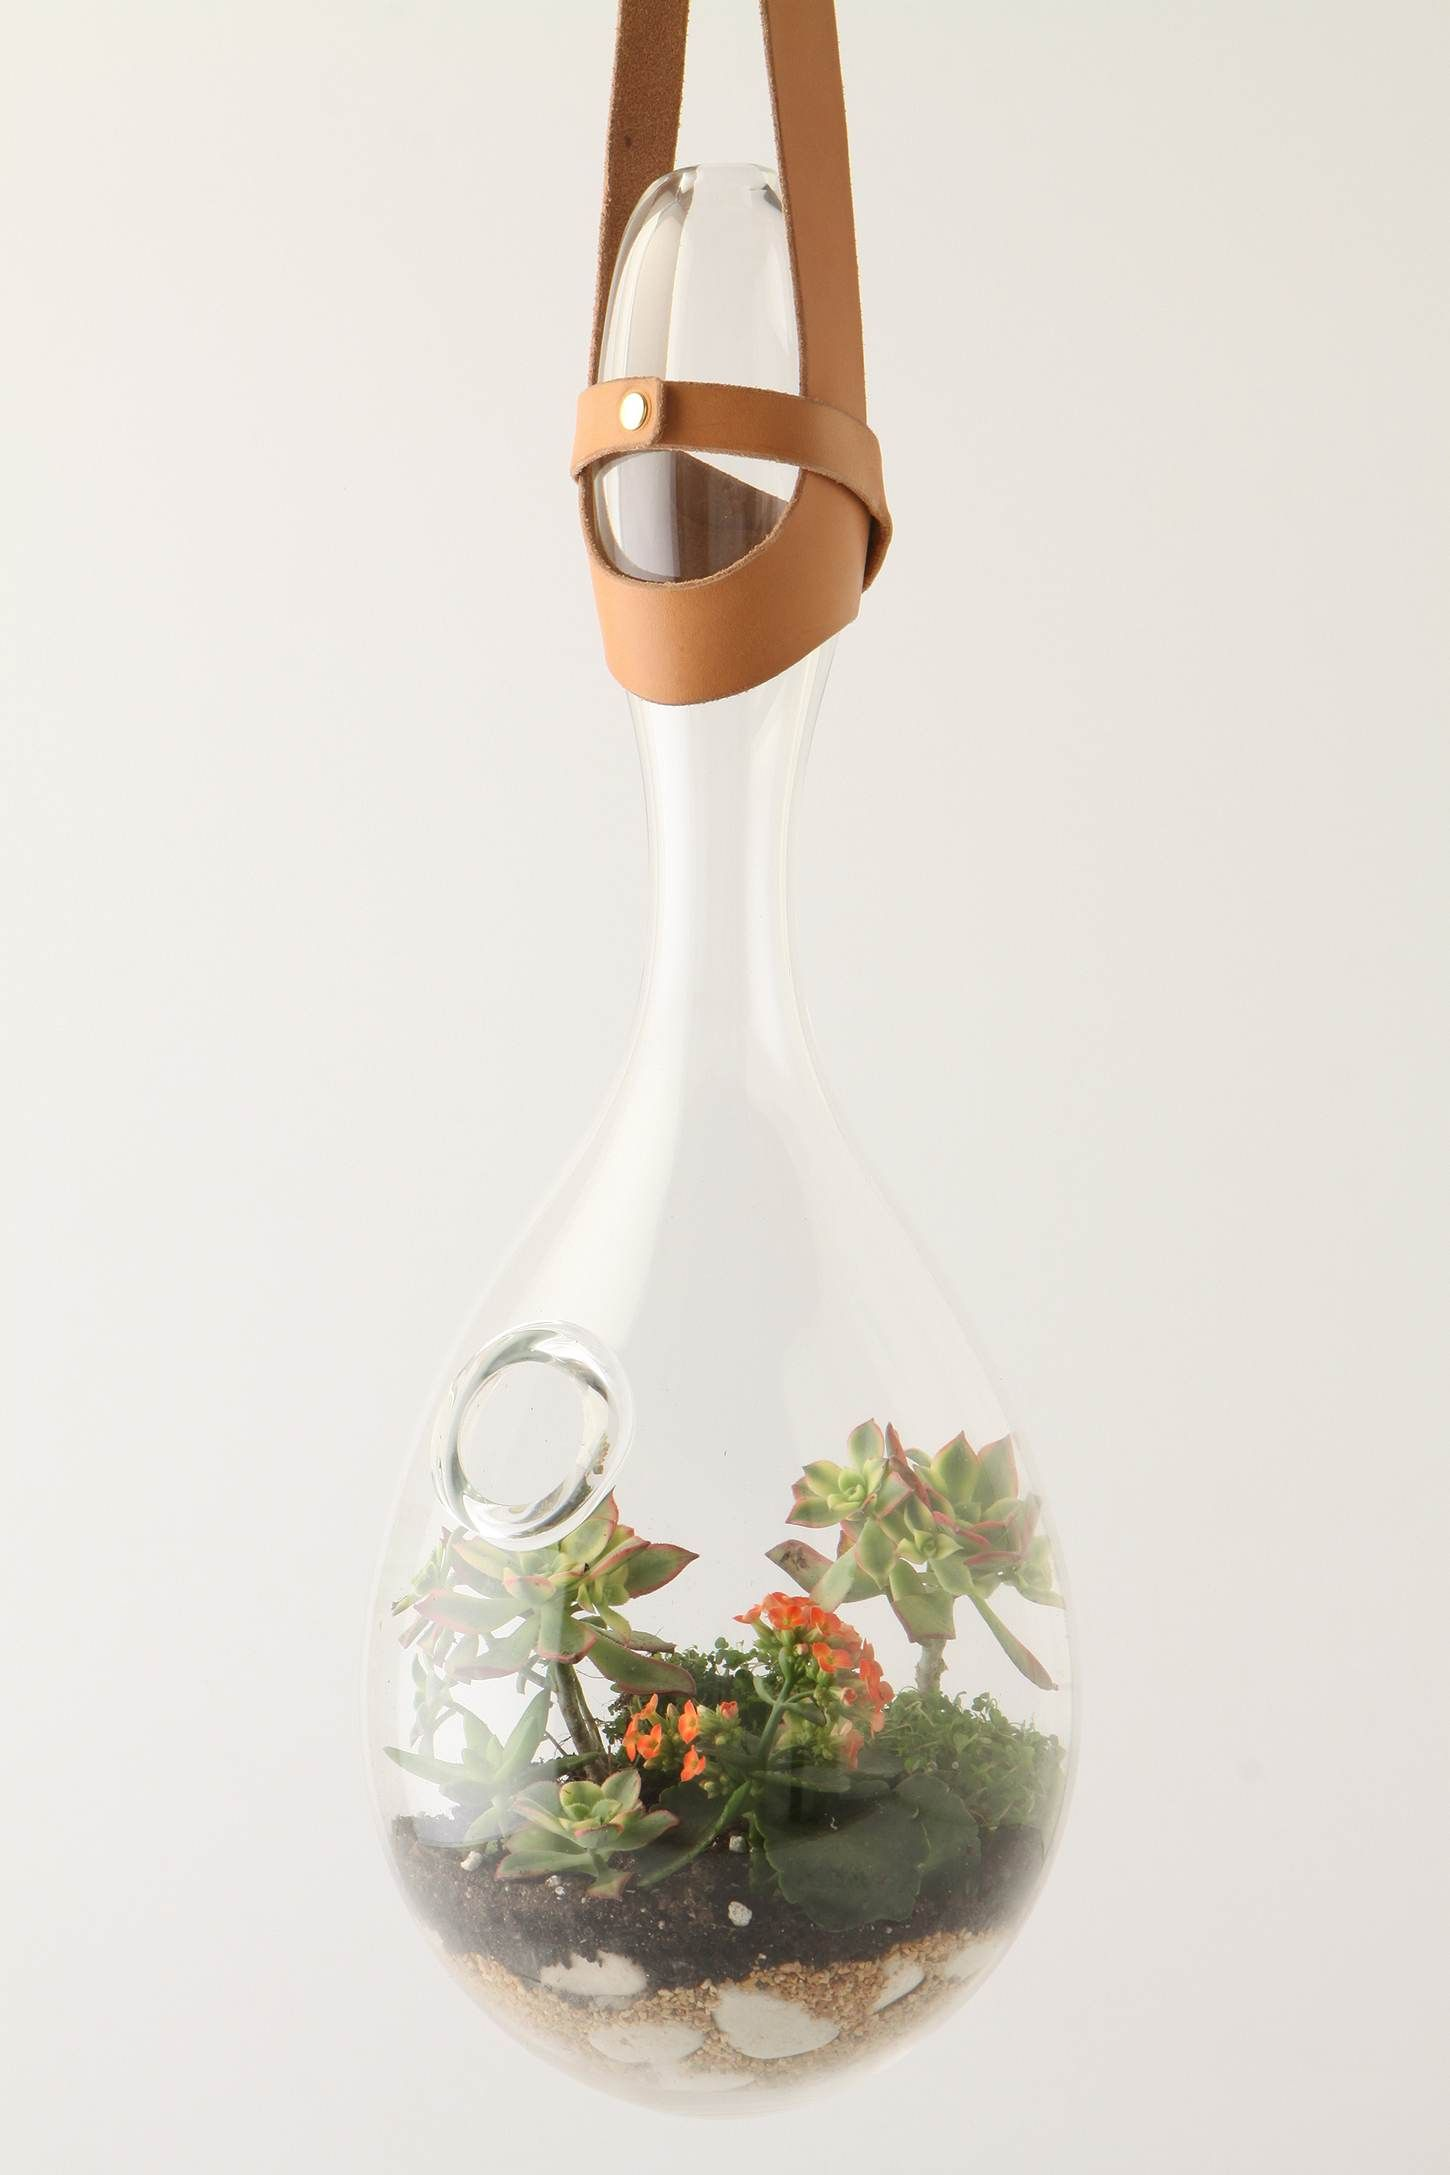 Dangling From A Neutral Leather Sling An Amorphous Glass Vessel